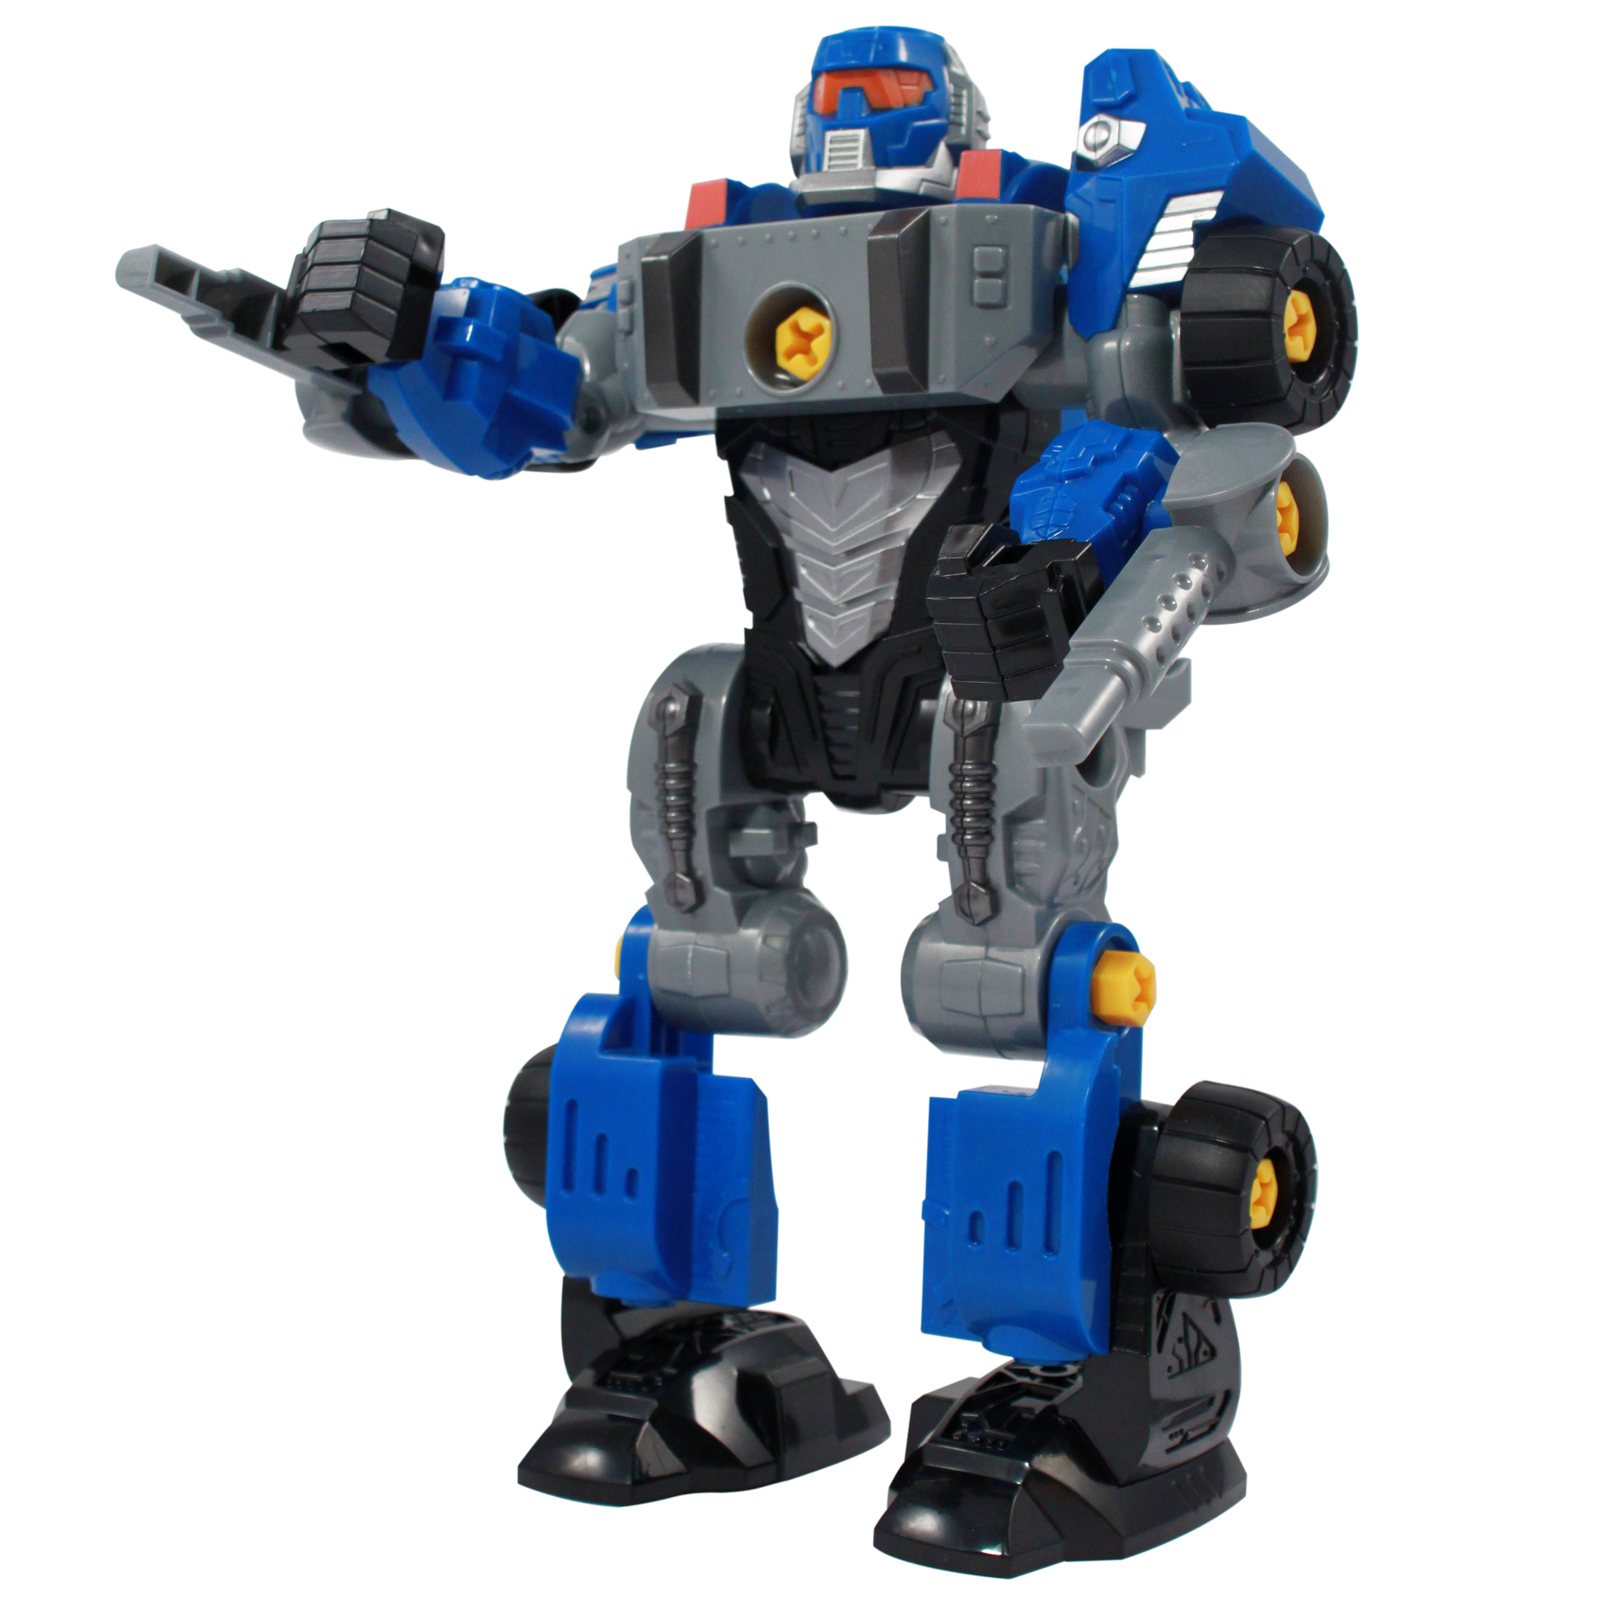 Transforming Robot Kids Toy 3 in 1 Converter Car Tools Blue